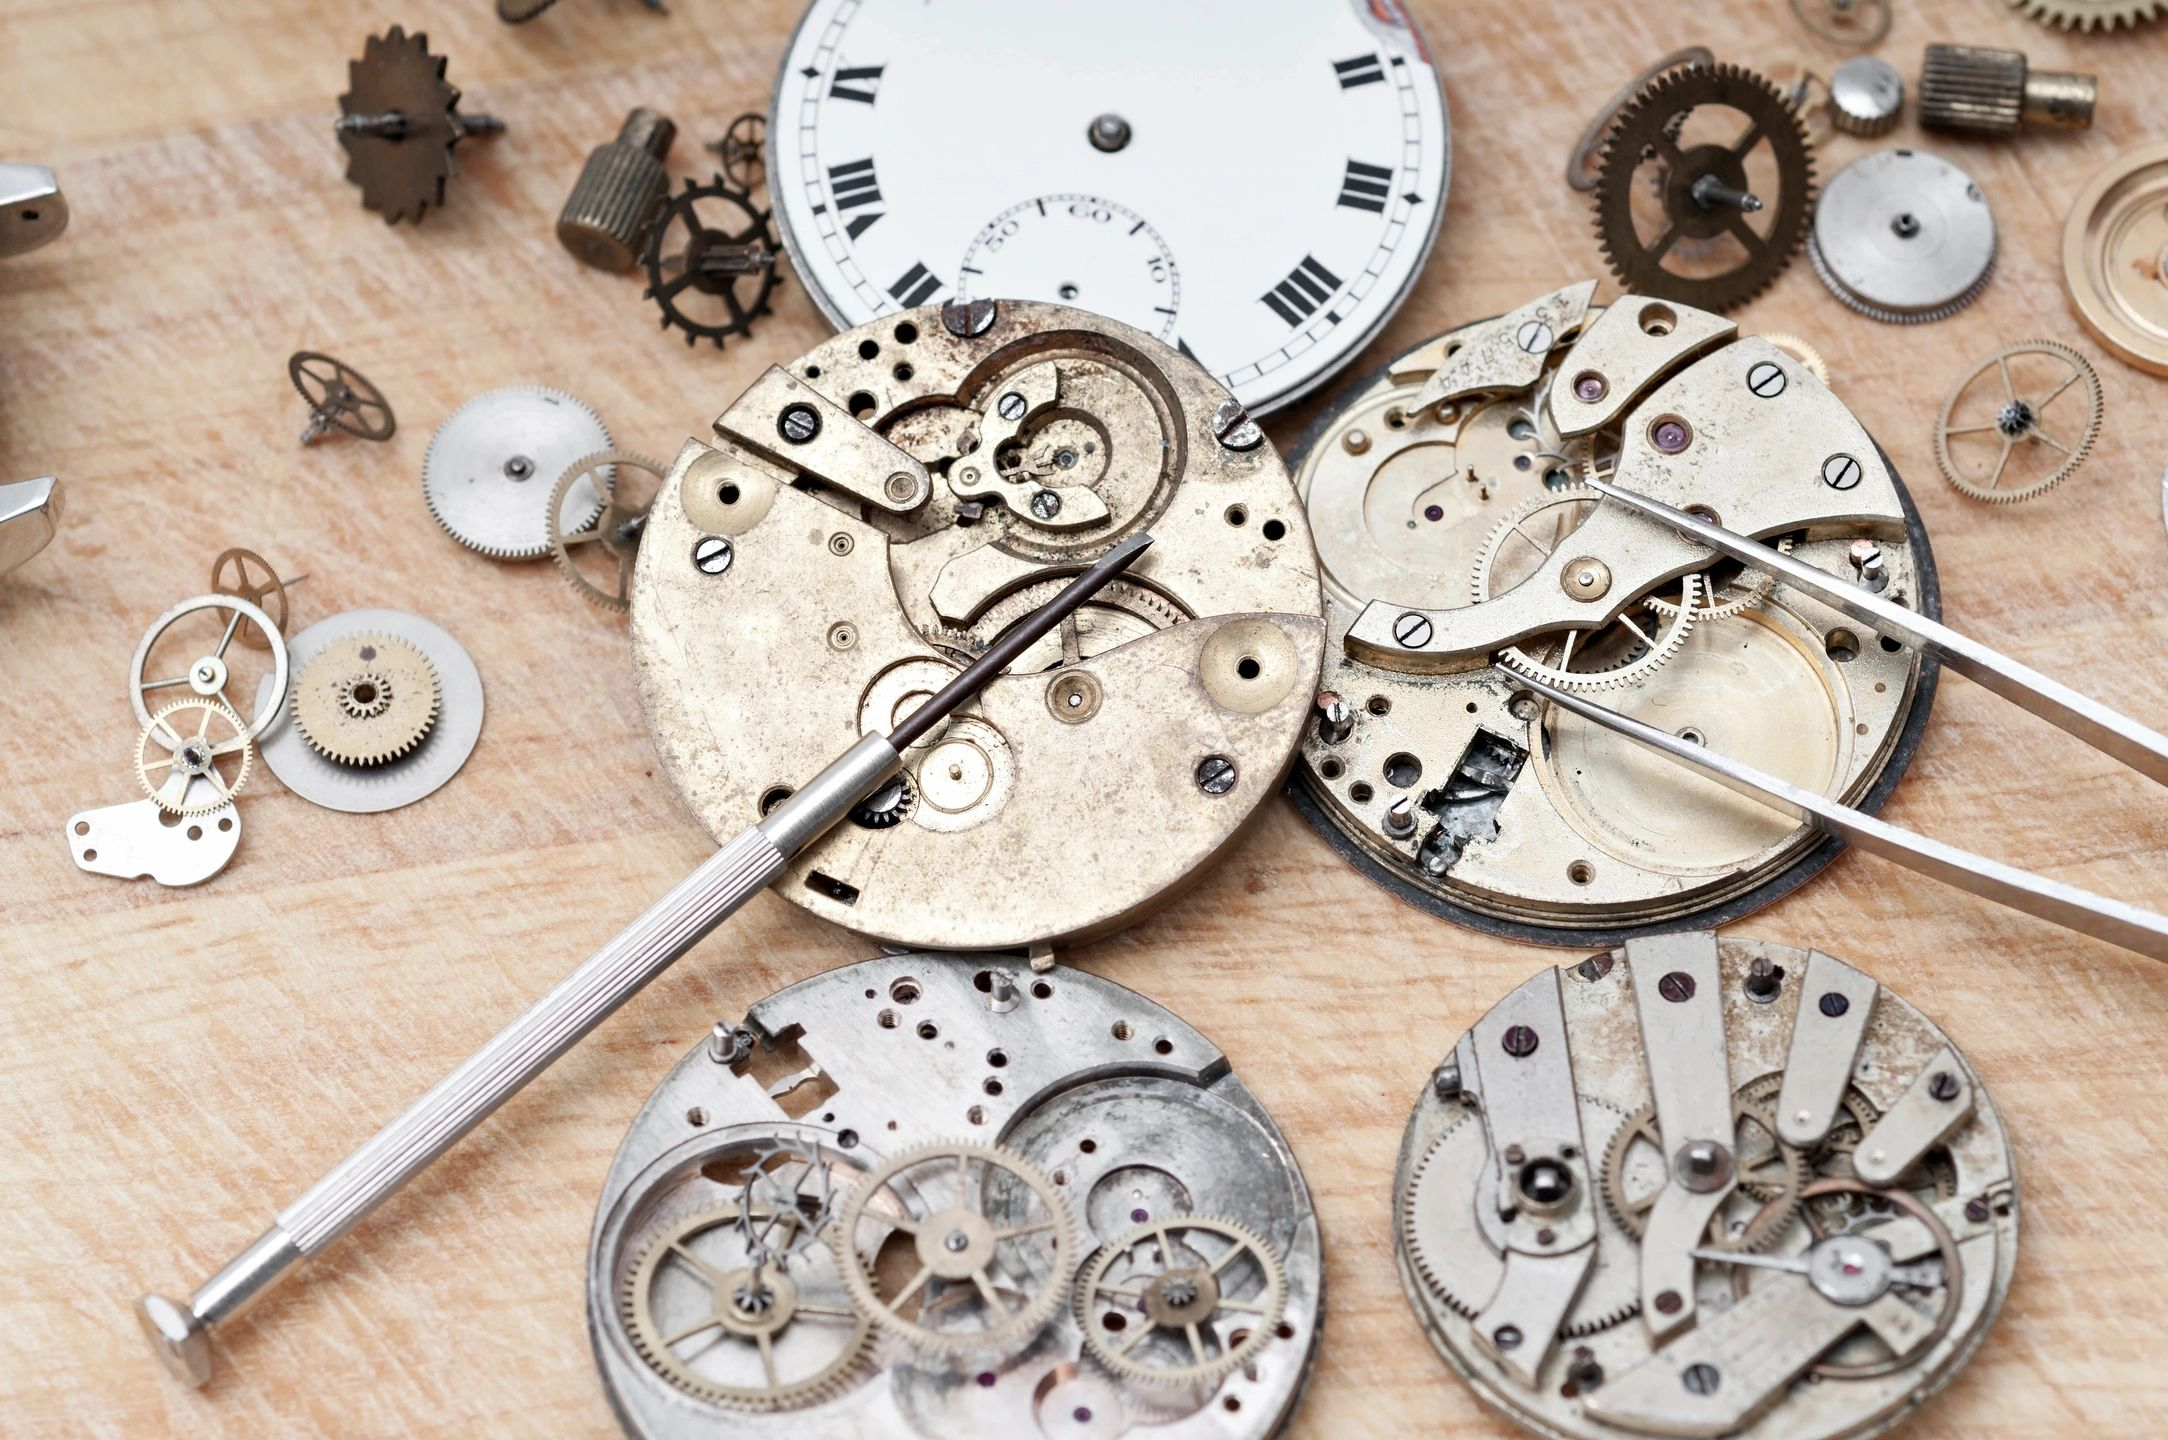 watch parts and watch repair tools